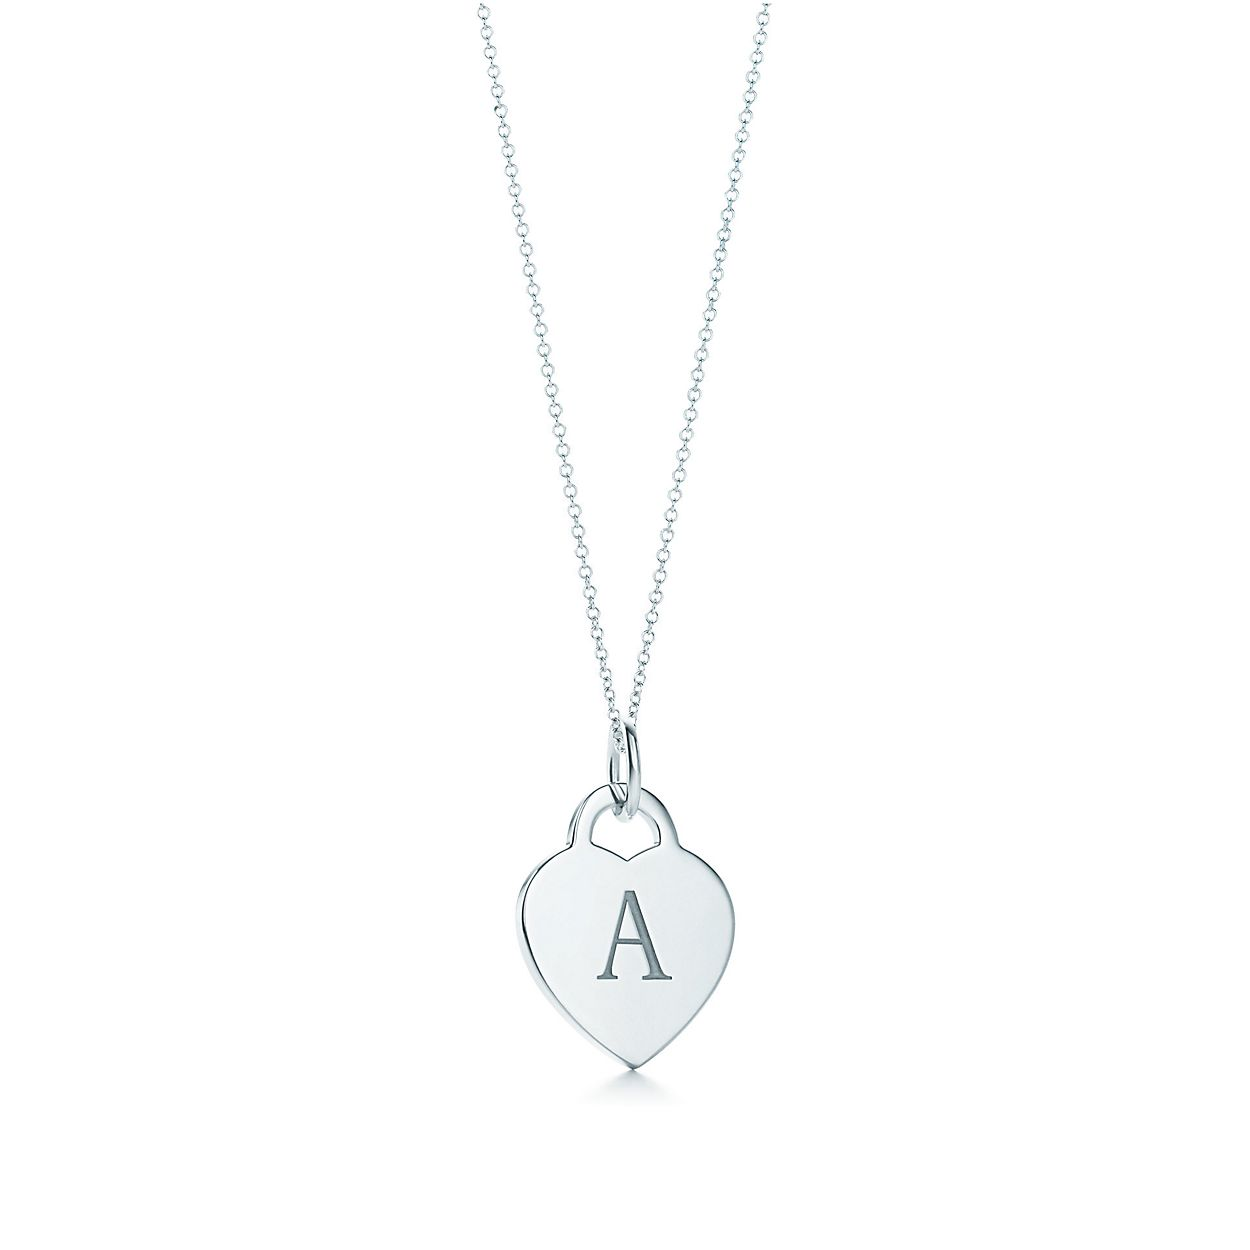 Tiffany Charms alphabet charm in sterling silver Letters A-Z available - Size A Tiffany & Co. hT7clwm7